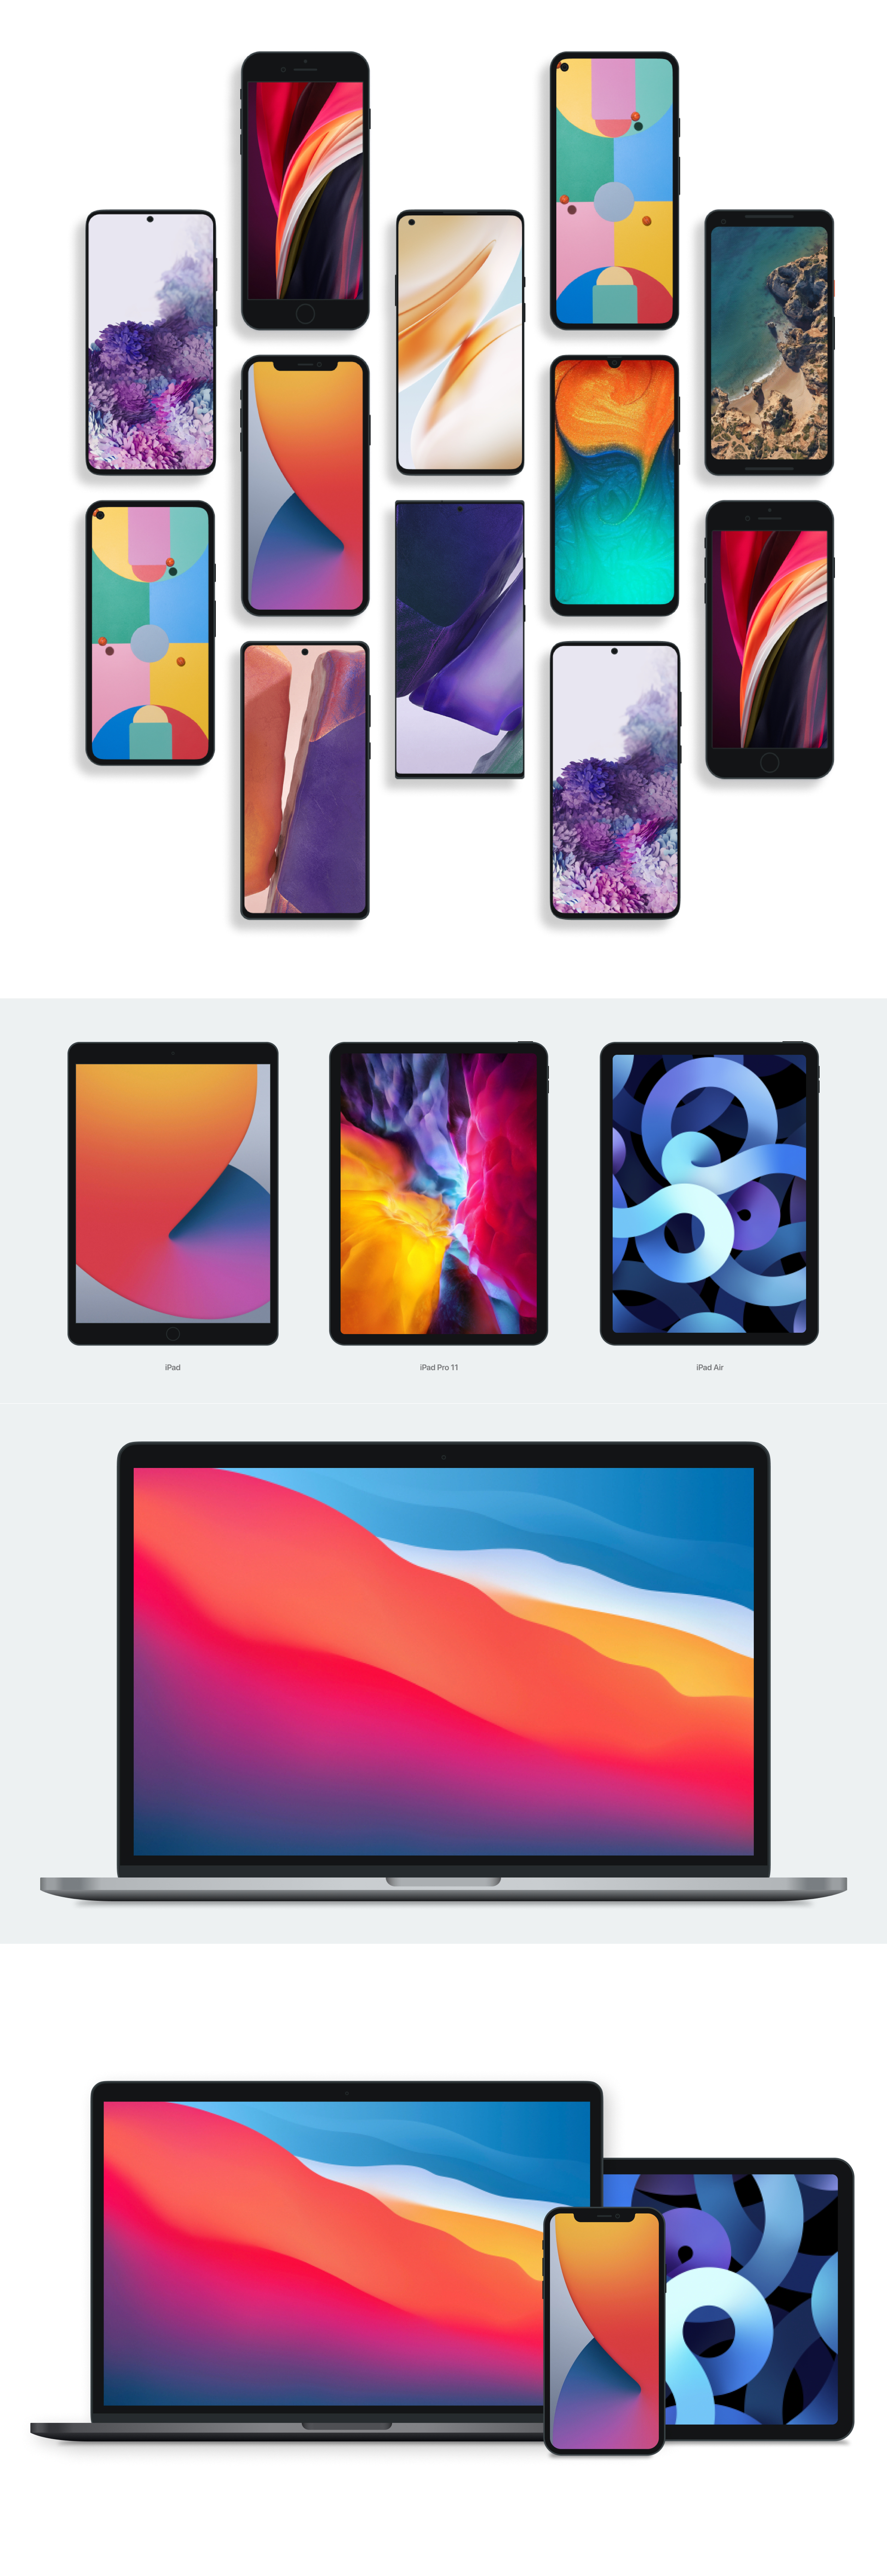 Free Device Mockups for Figma - Free vector mockups for various mobile devices including: